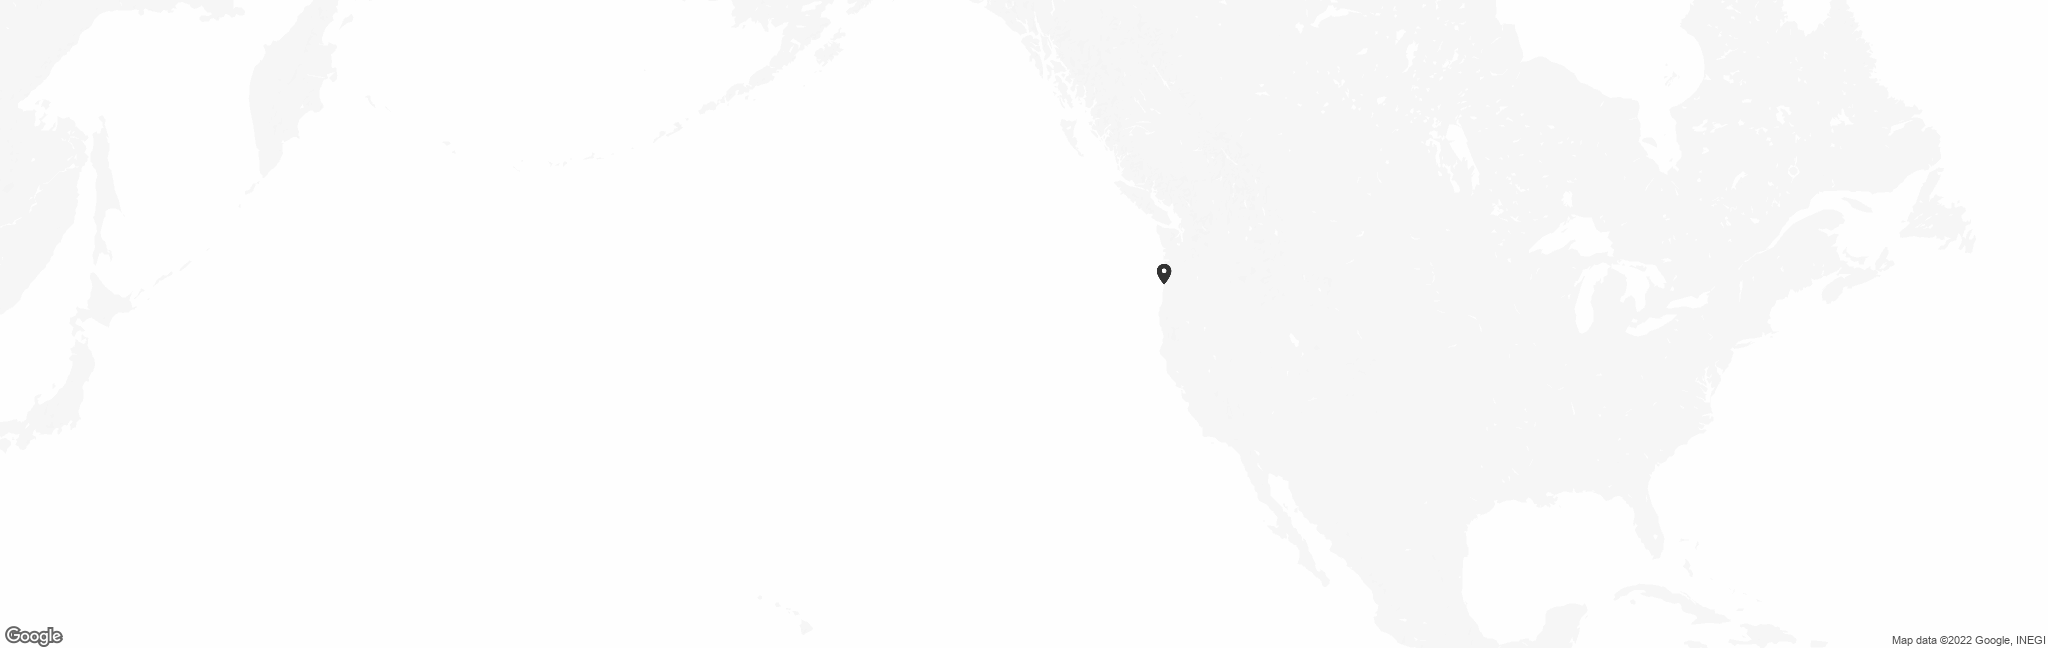 Map of US with pin of Oregon Boating Foundation location